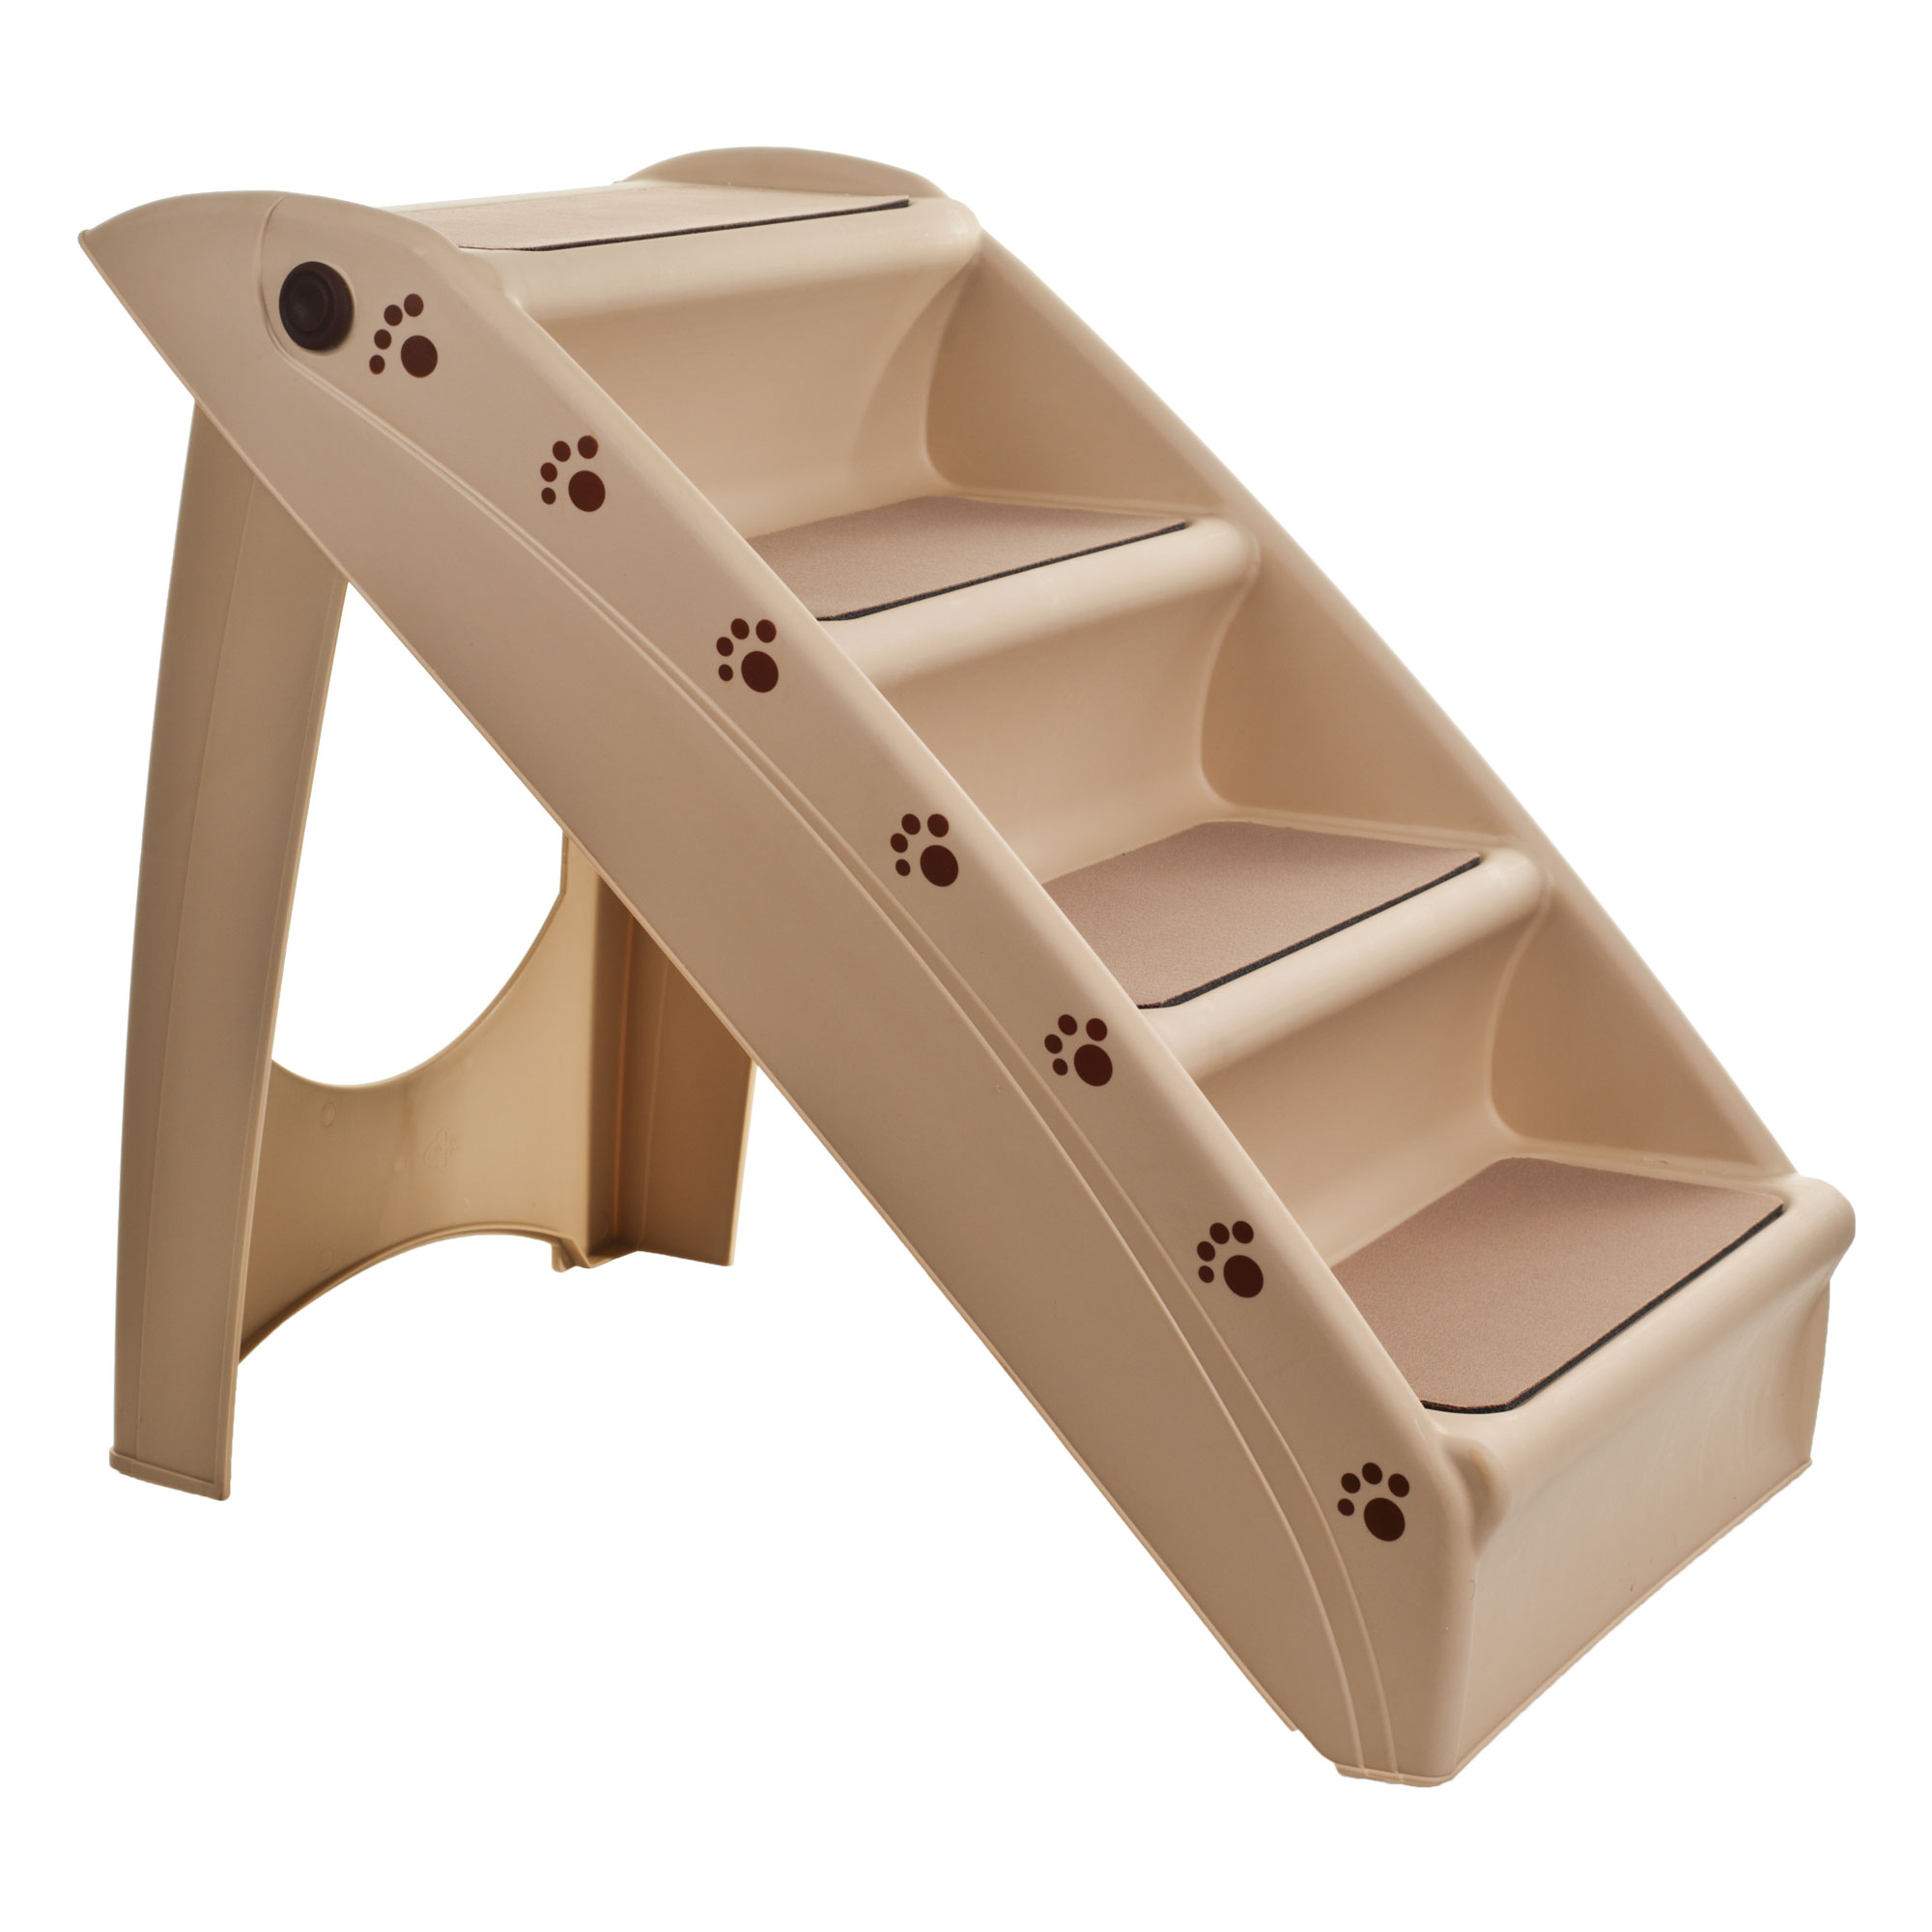 Foldable Pet Stairs Step Staircases, Great for Dogs and Cats